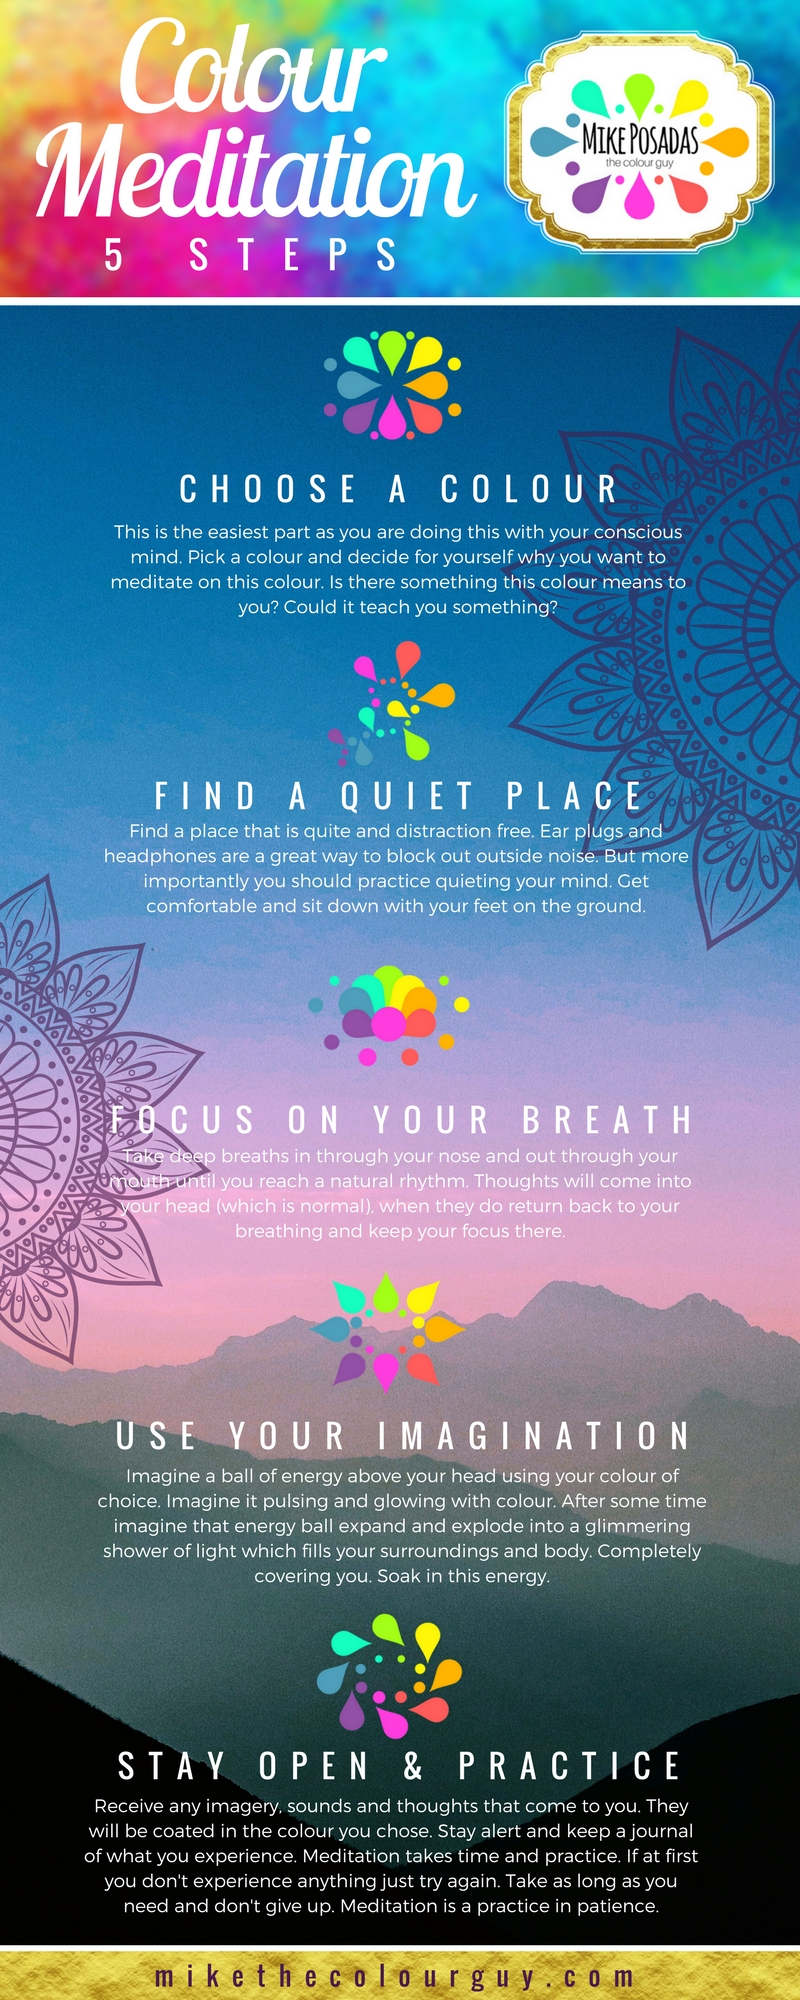 5 Step Colour Meditation